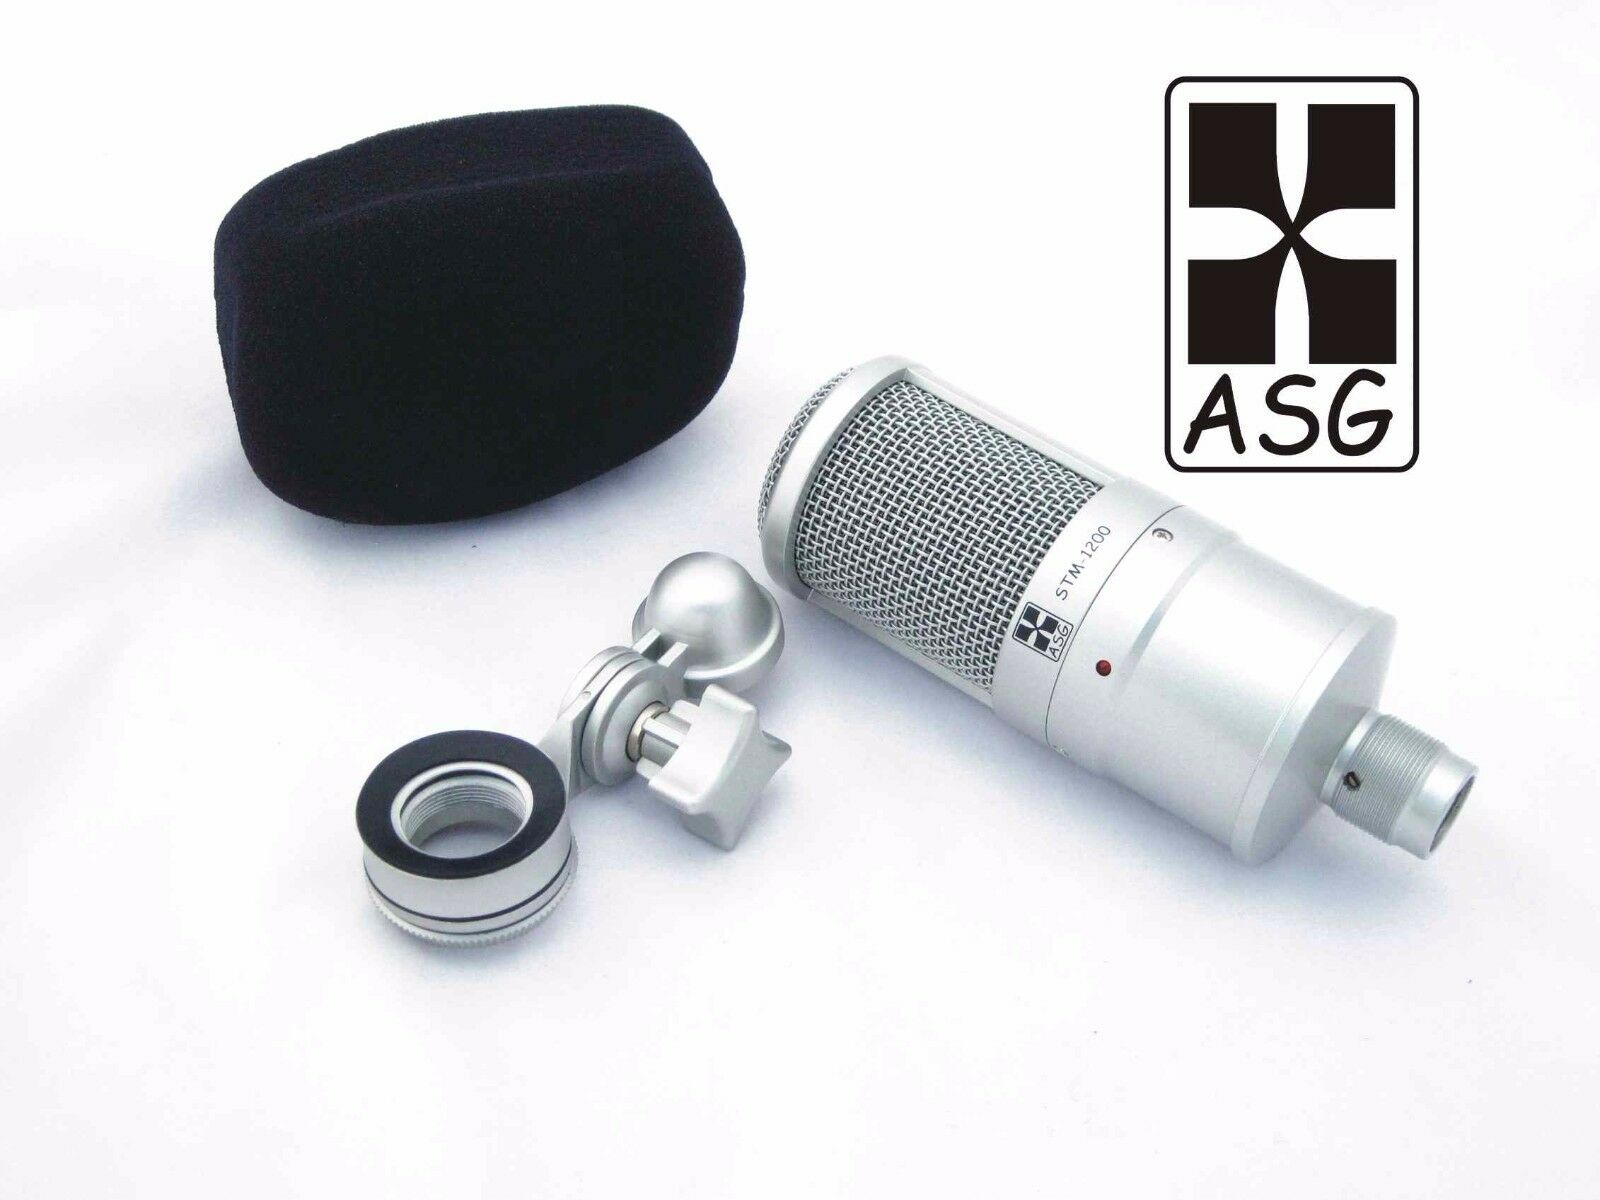 Professional Recording Microphone - High Quality Product from Clear Sound